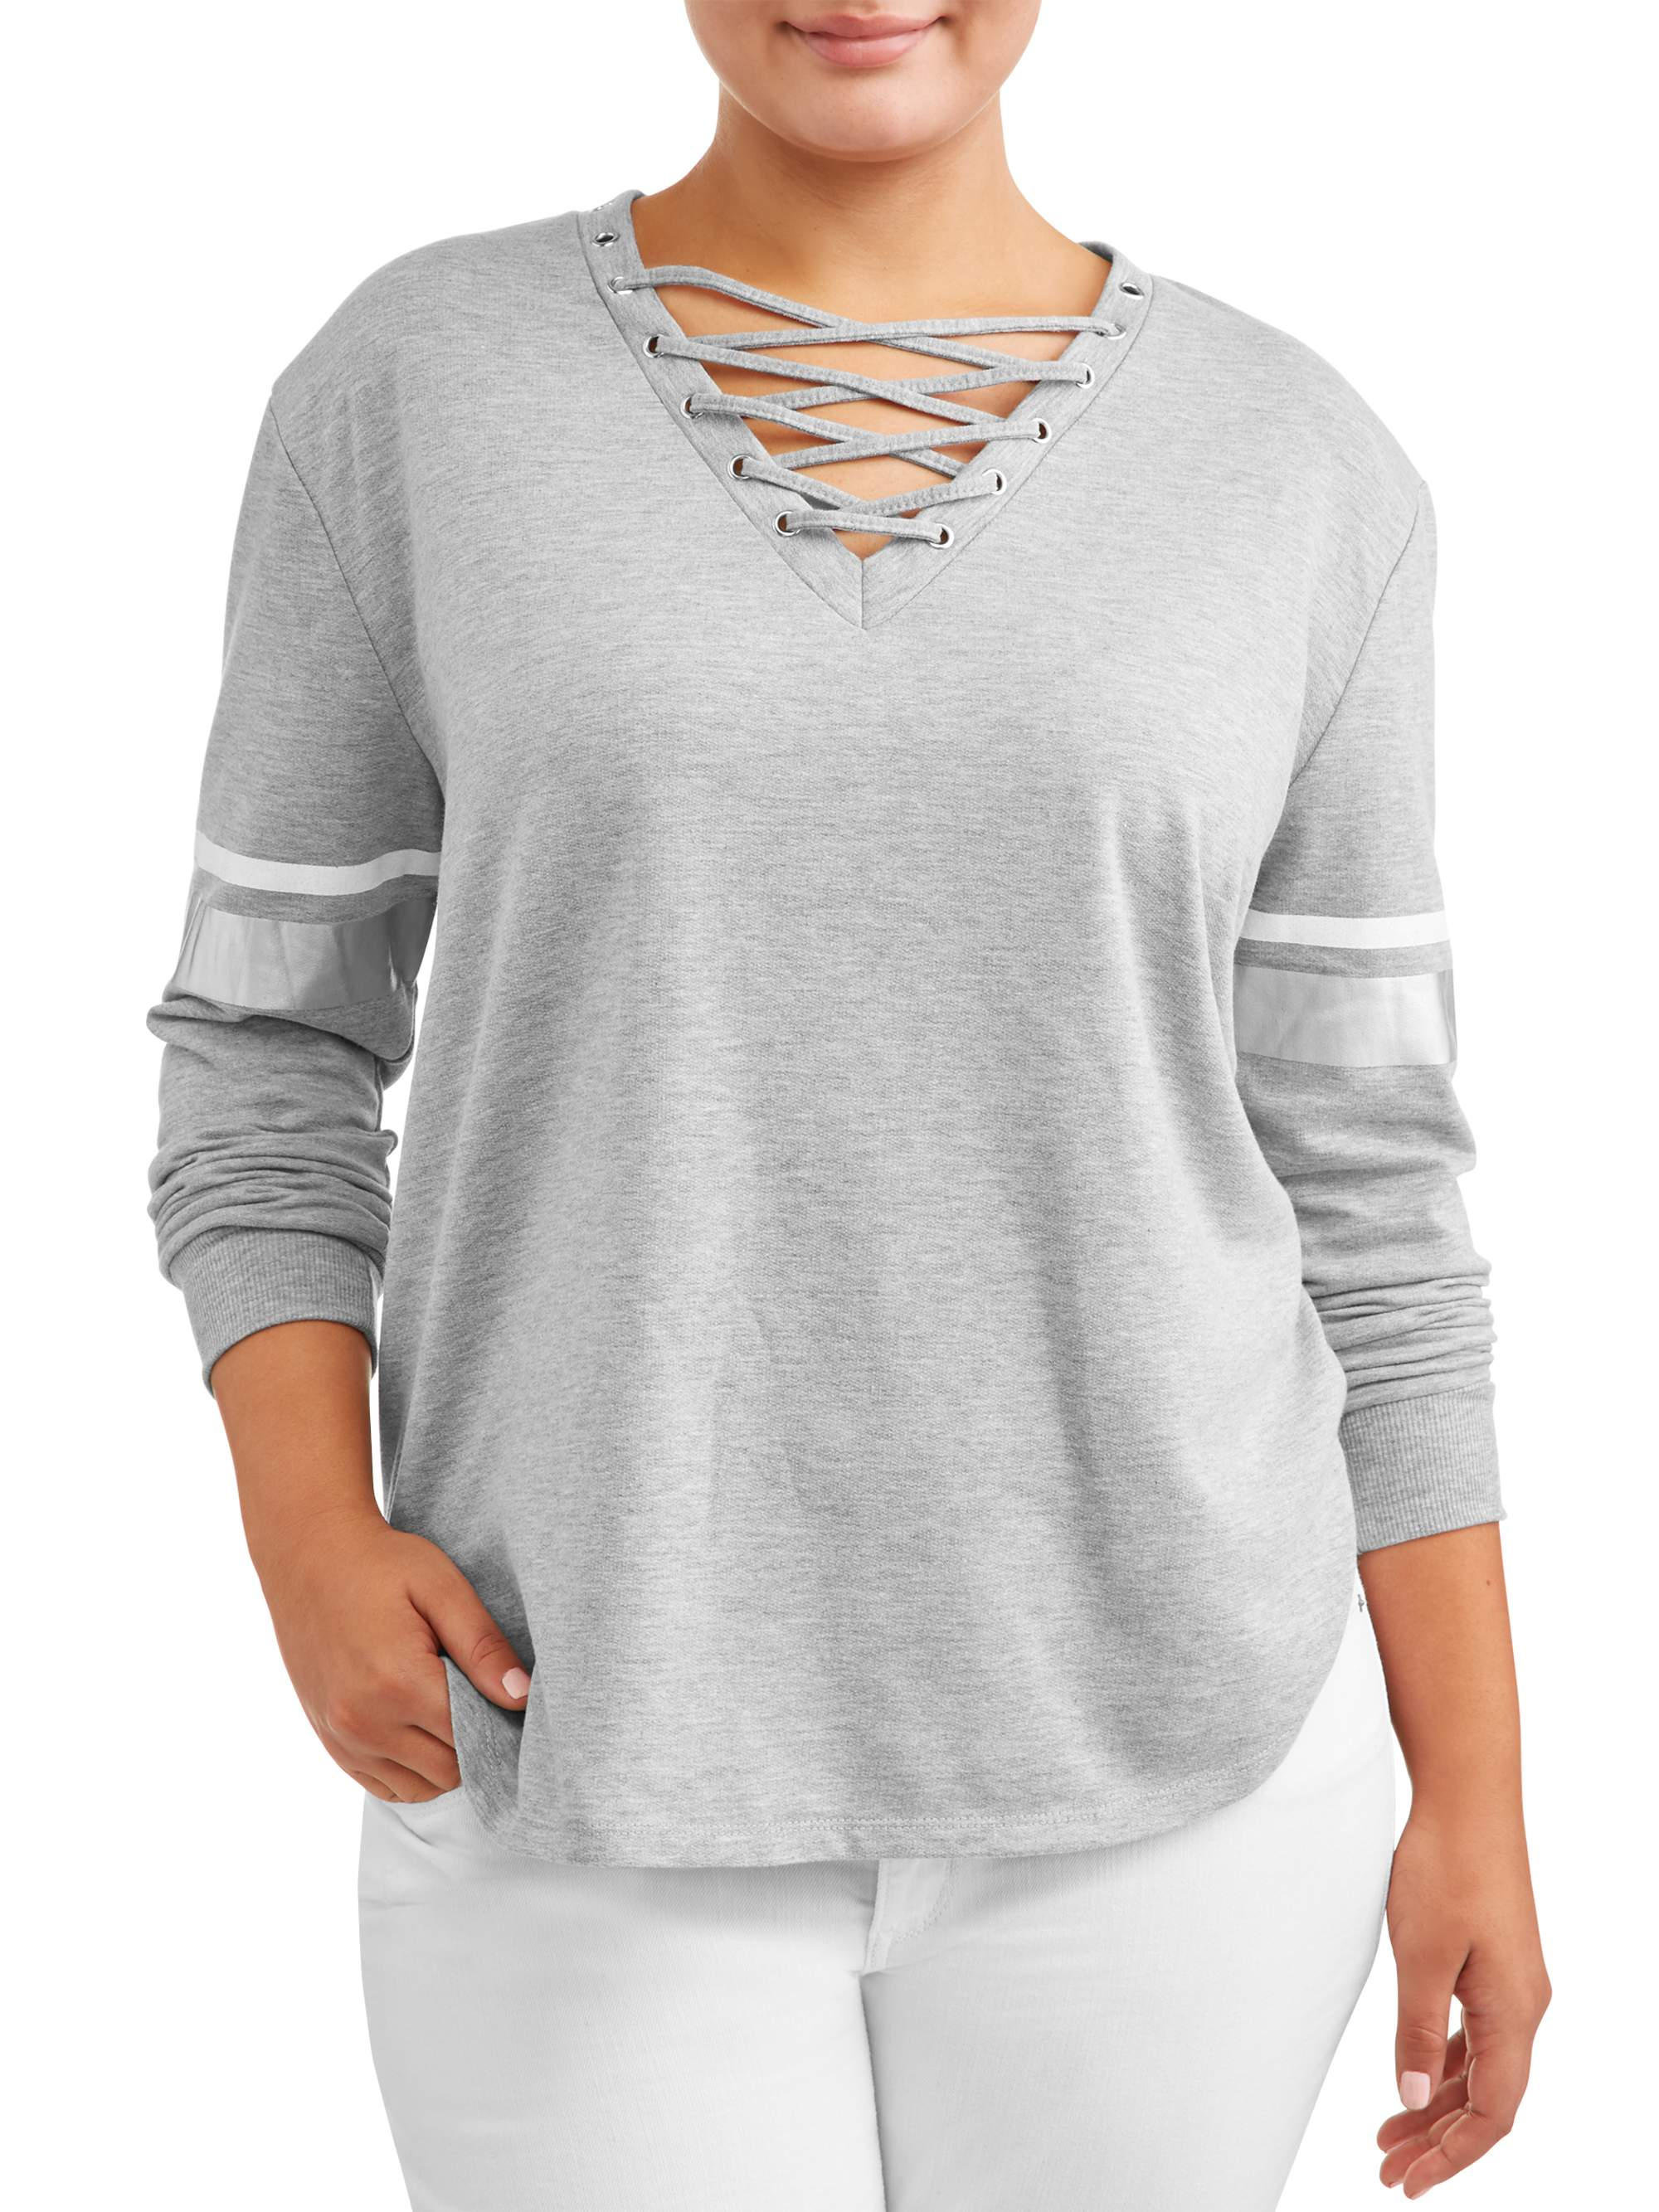 Juniors' Plus Size Long Sleeve Lace Up Front Sweatshirt with Foil Print